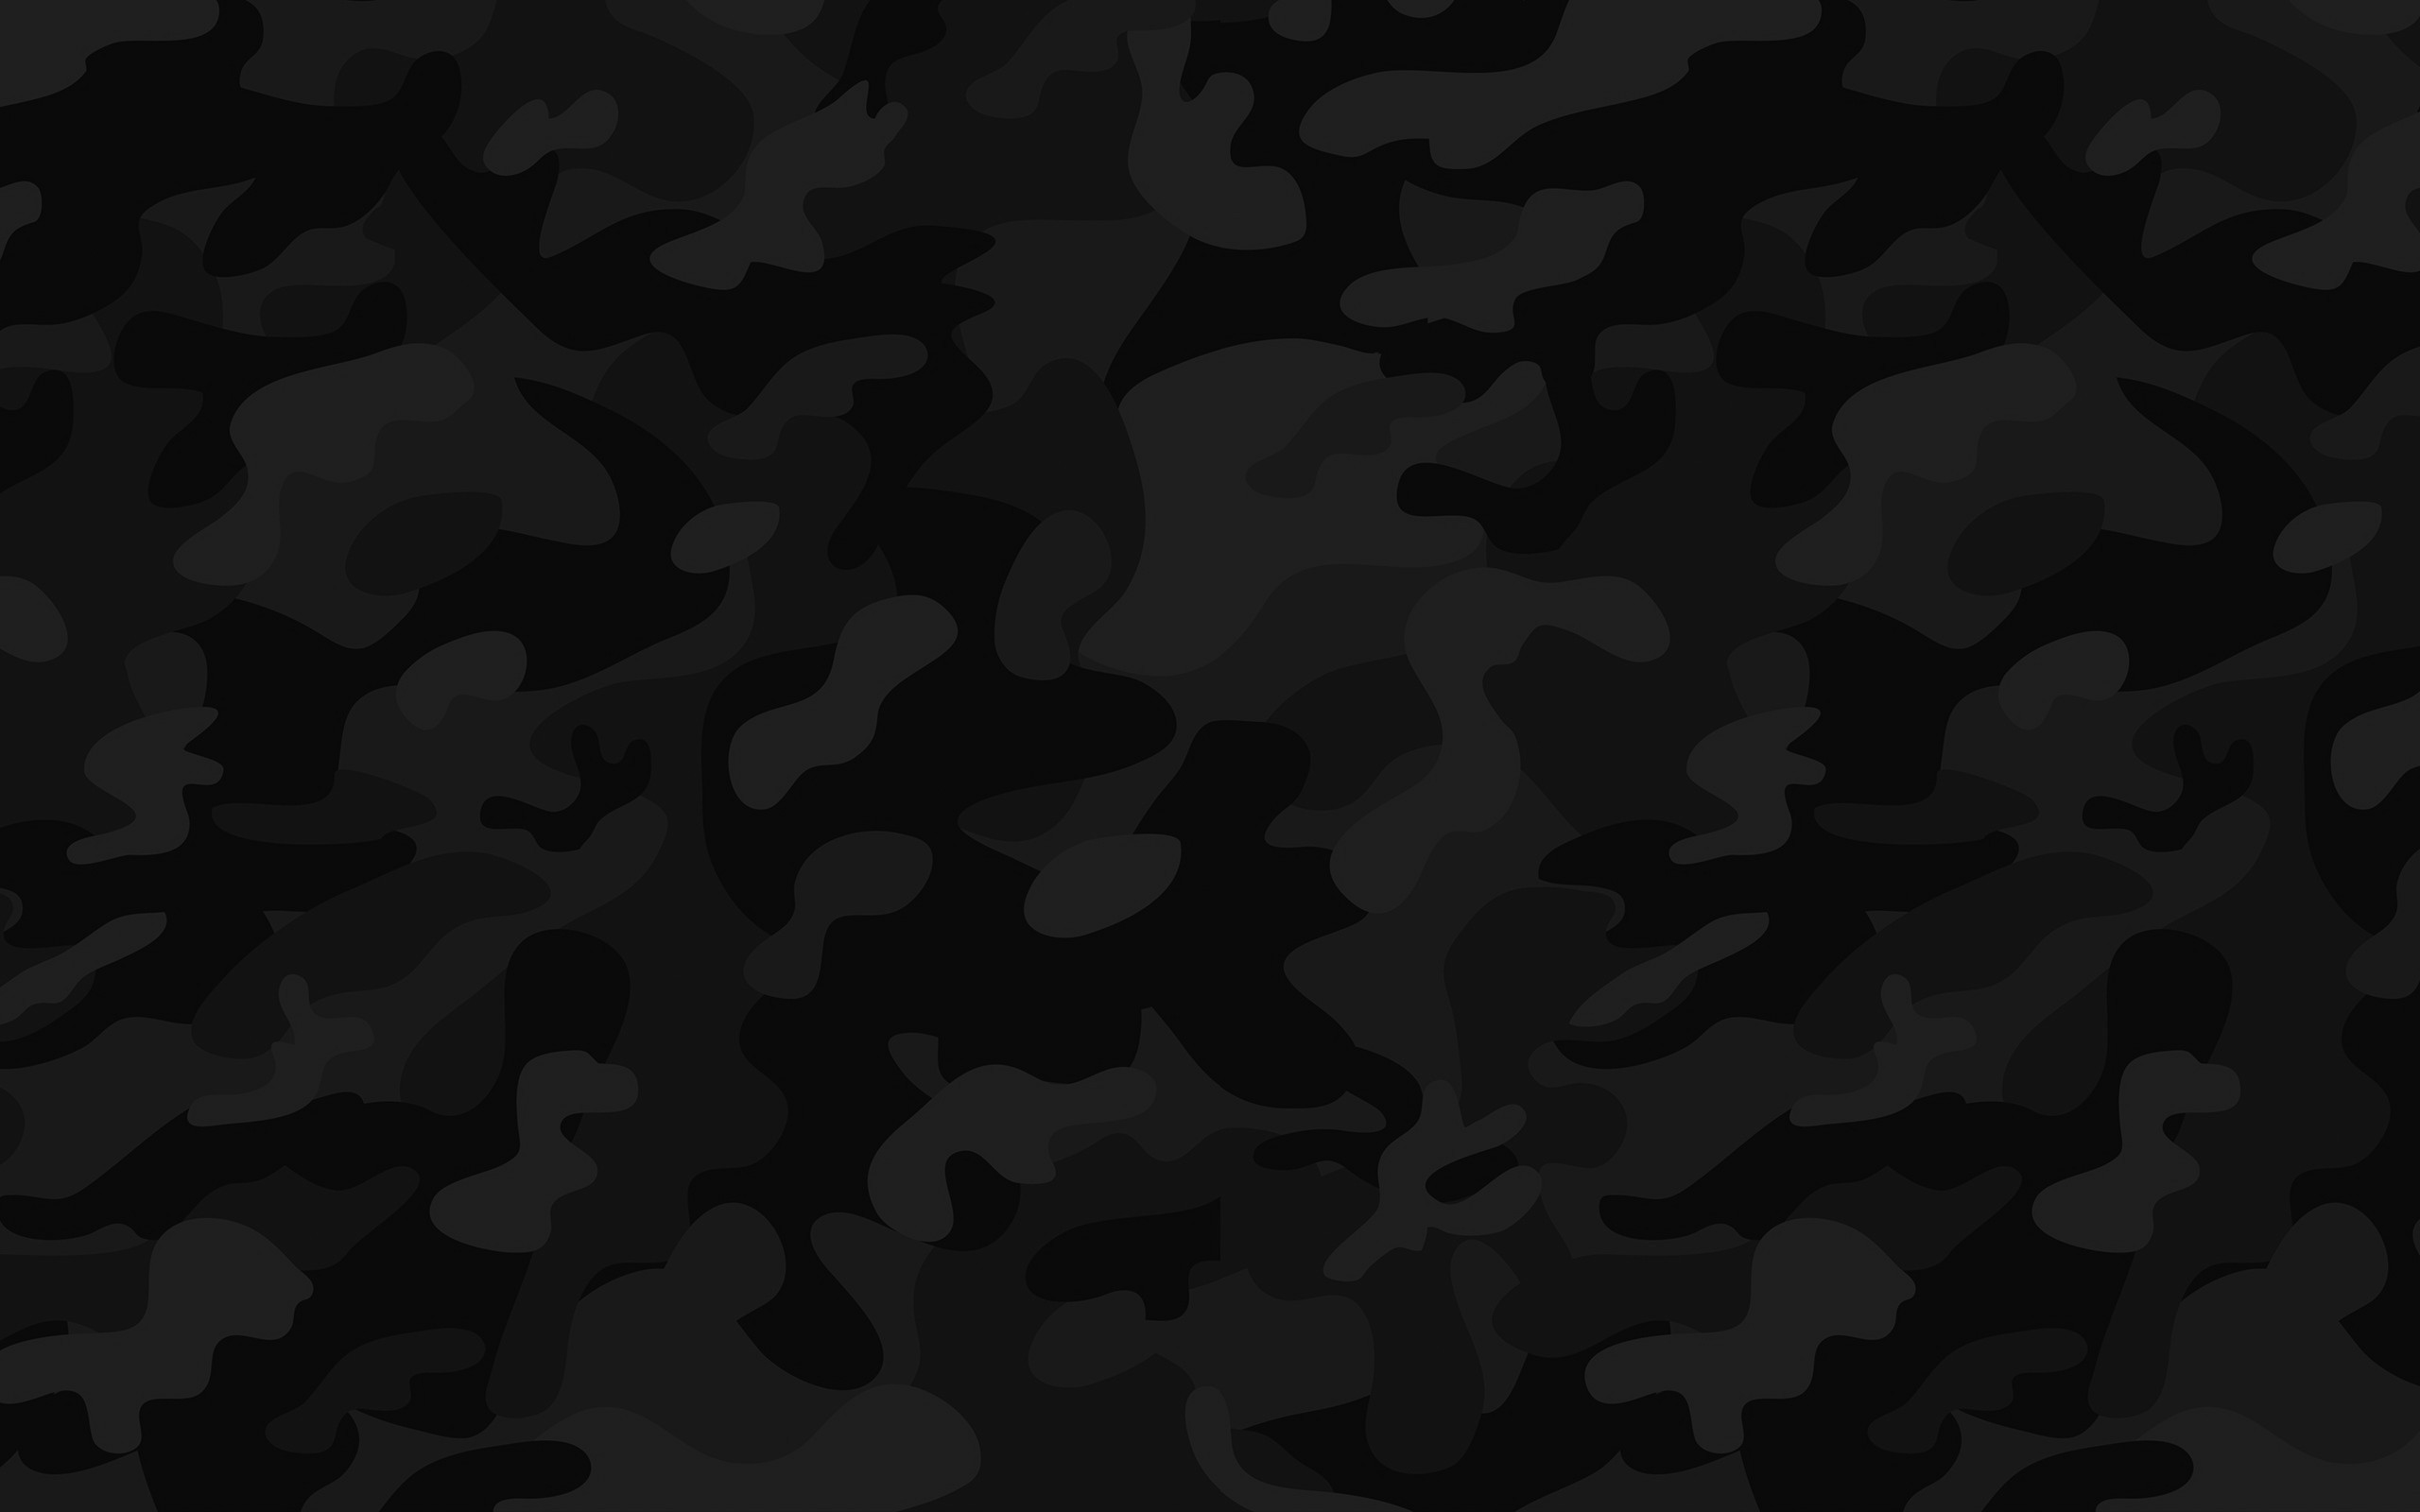 Related Pictures military camo wallpaper hd wallpapers 2560x1600